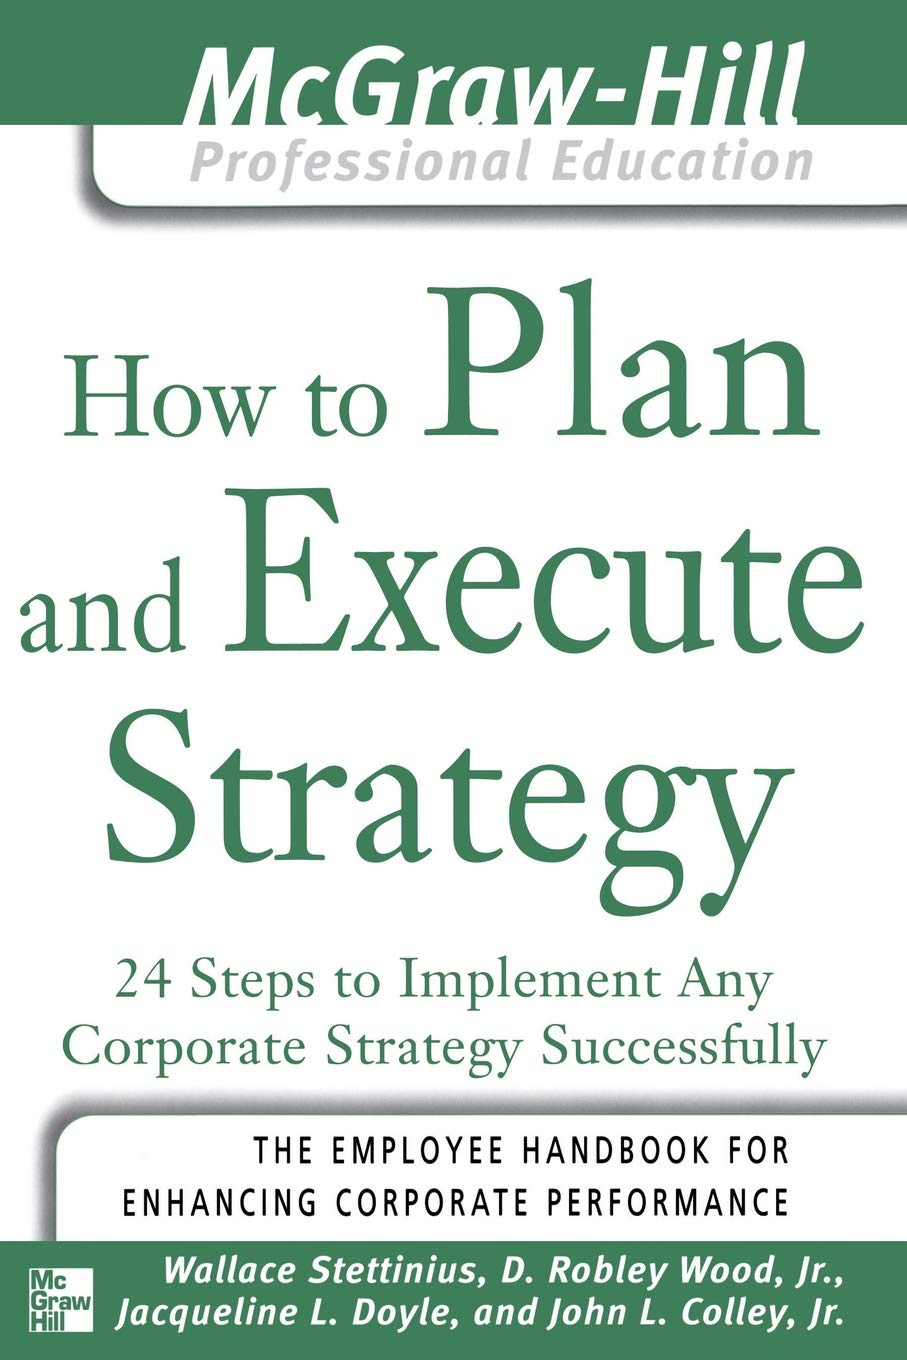 How to Plan and Execute Strategy: 24 Steps to Implement Any Corporate Strategy Successfully (The McGraw-Hill Professional Education Series) pdf